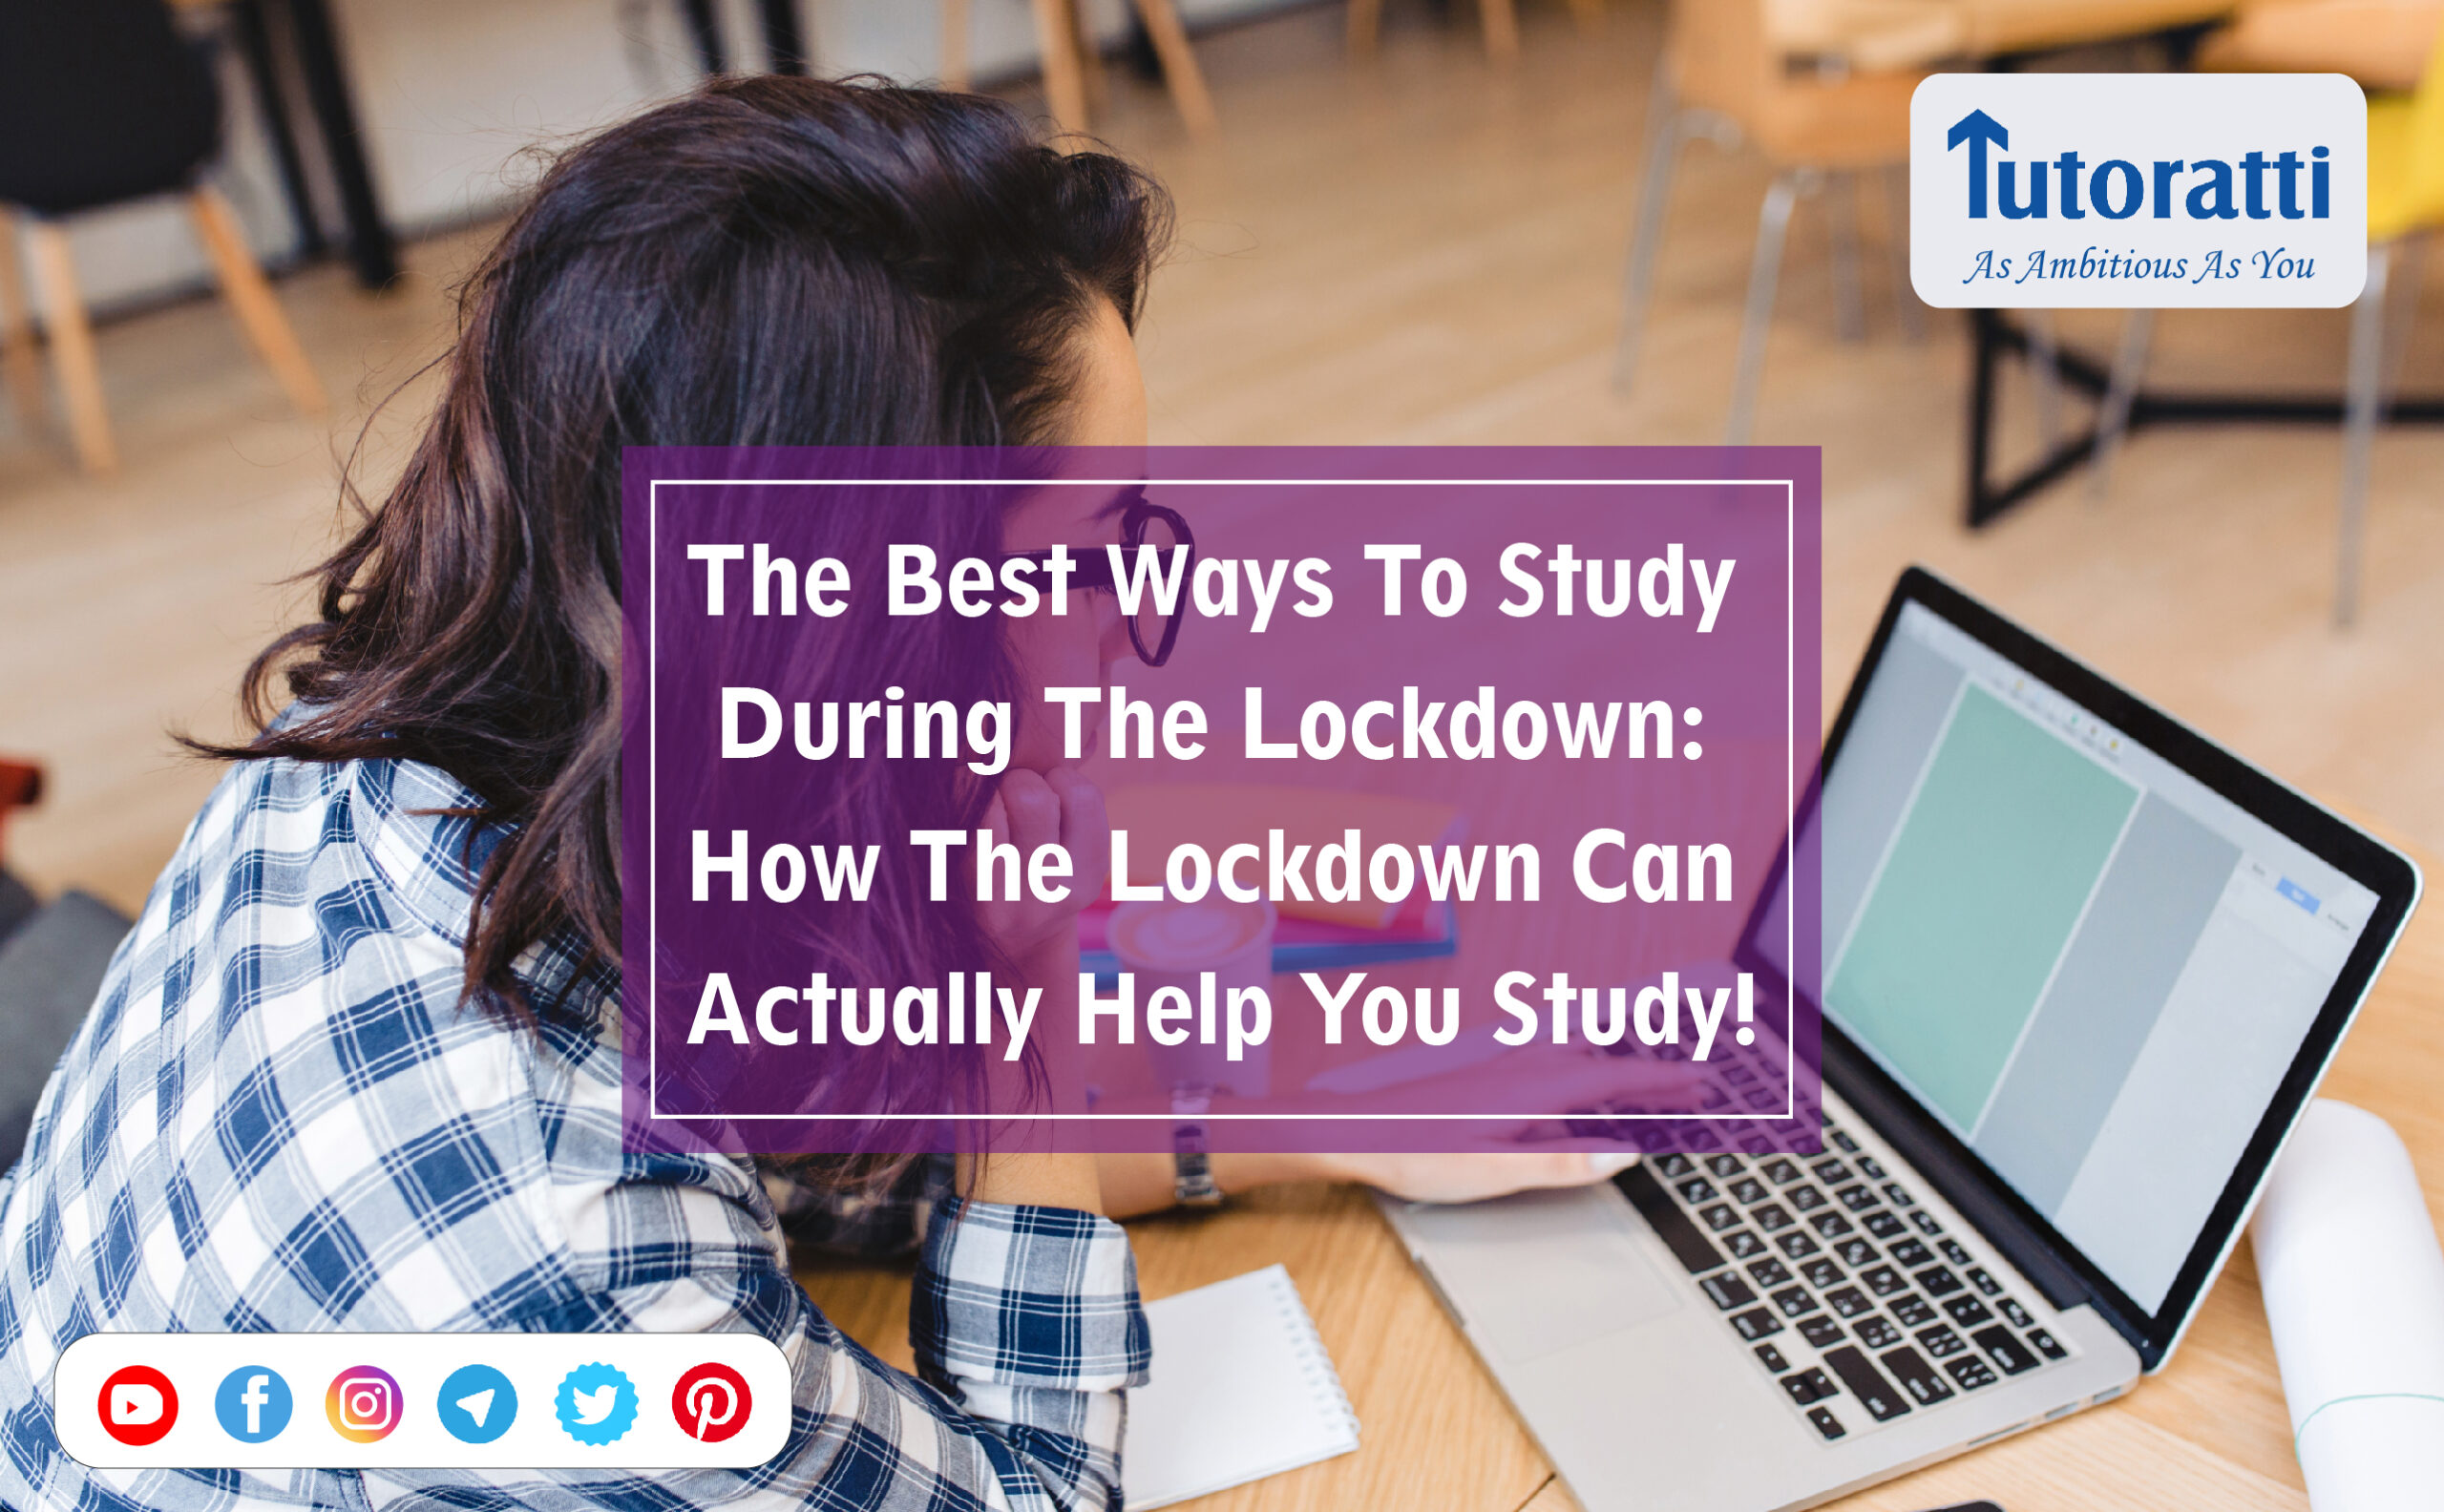 The Best Ways To Study During The Lockdown: How The Lockdown Can Actually Help You Study!